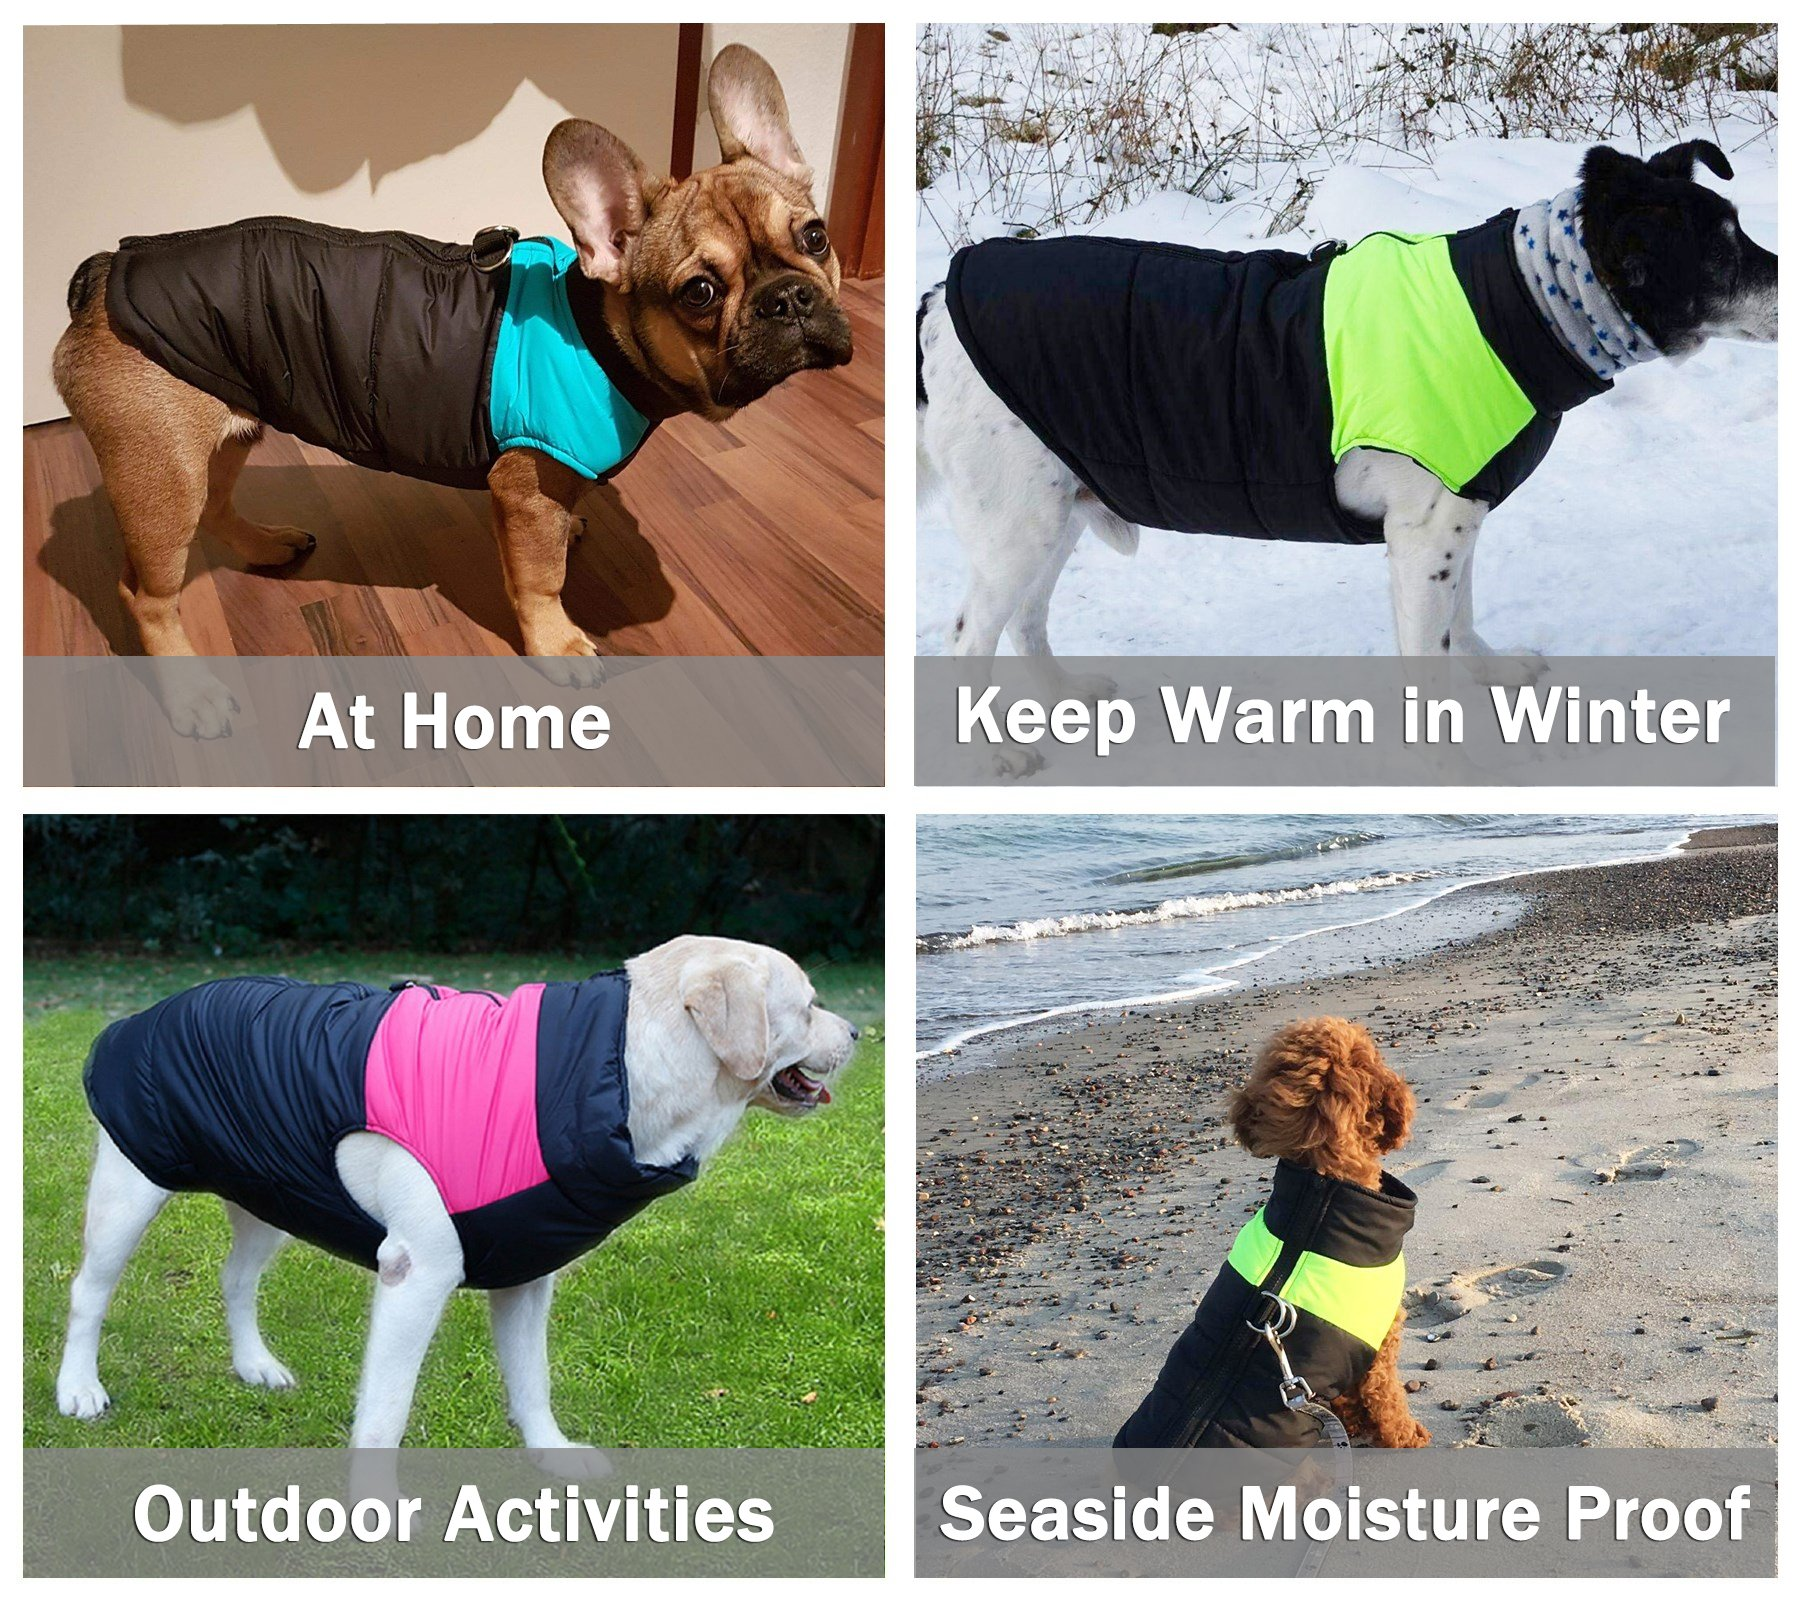 TFENG Waterproof Dog Coats Padded Puffer Jackets with D-Rings for Leash 4 Colors XS-5XL 4